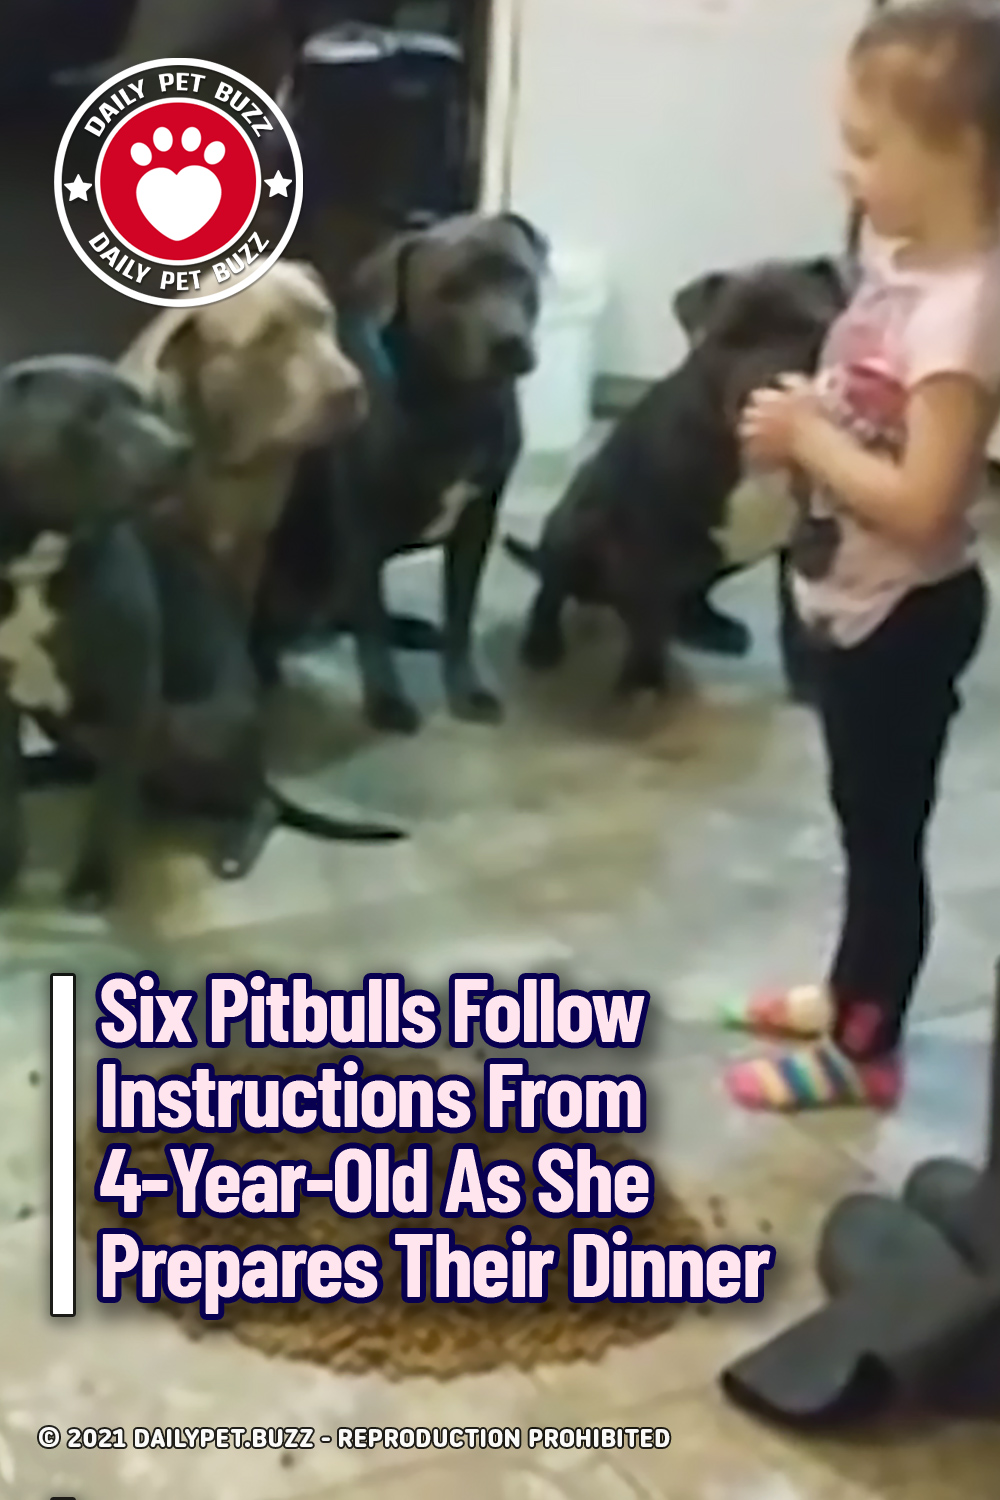 Six Pitbulls Follow Instructions From 4-Year-Old As She Prepares Their Dinner